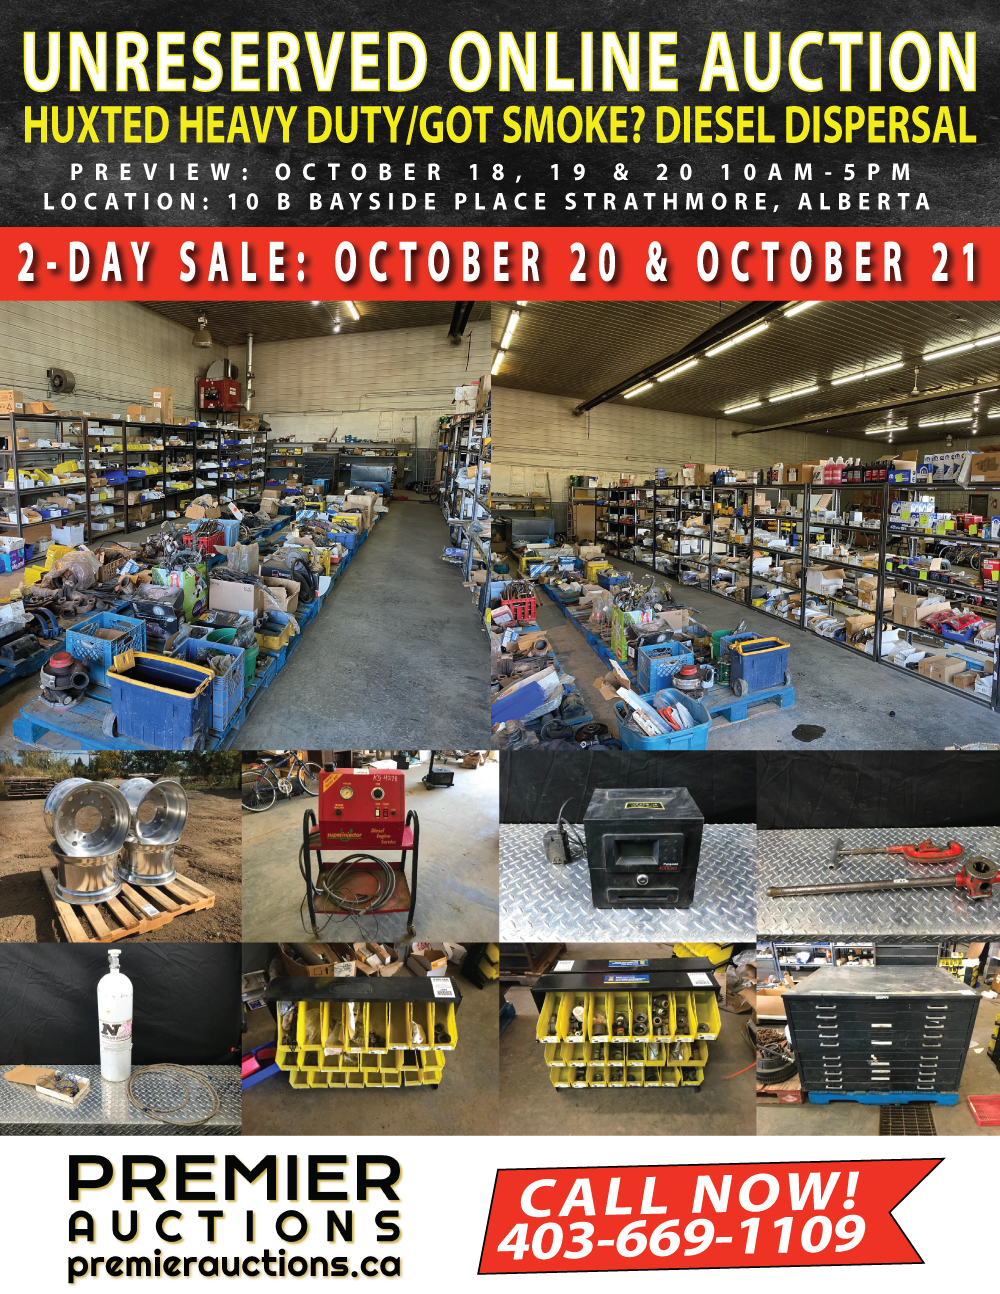 Huxted Heavy Duty Sale October 21, 2021